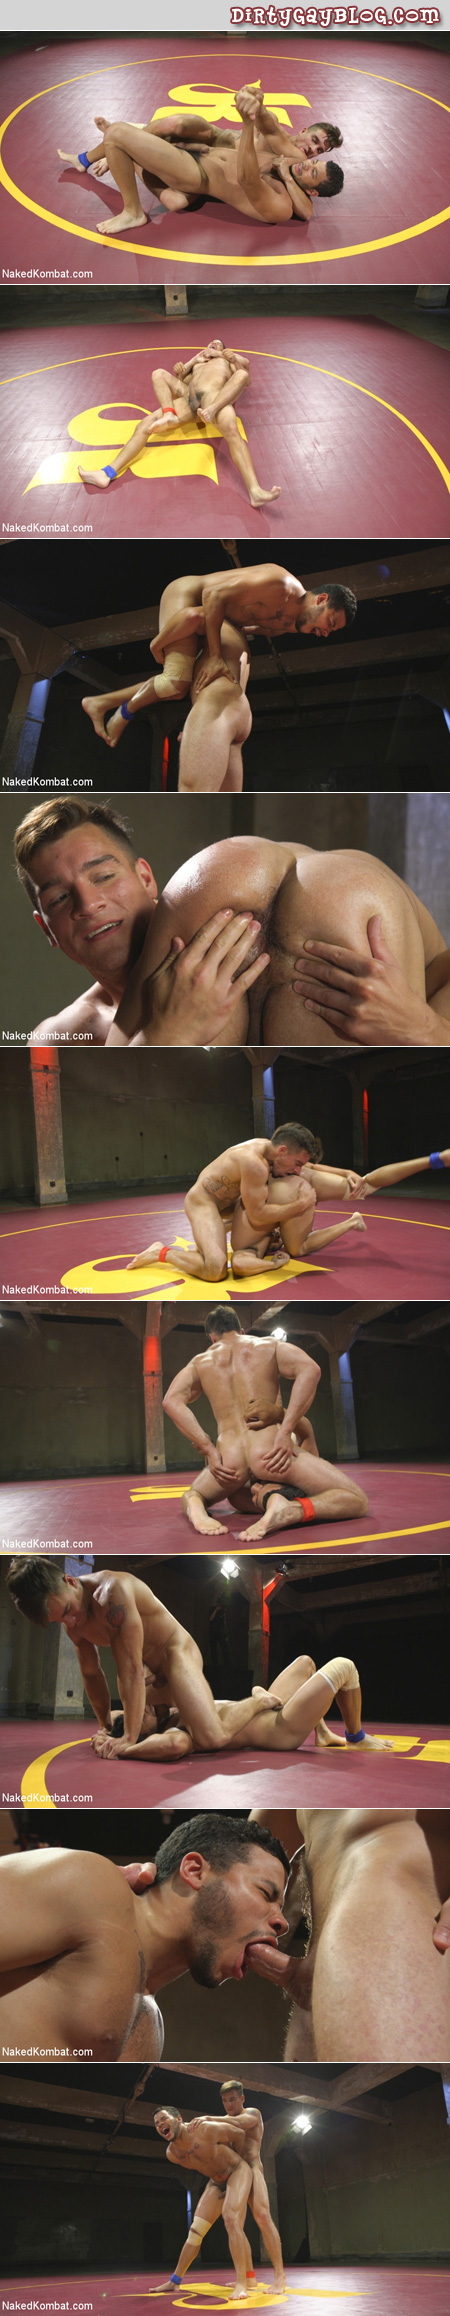 Hunky young muscle men wrestling to see who gets to be on top when they fuck.